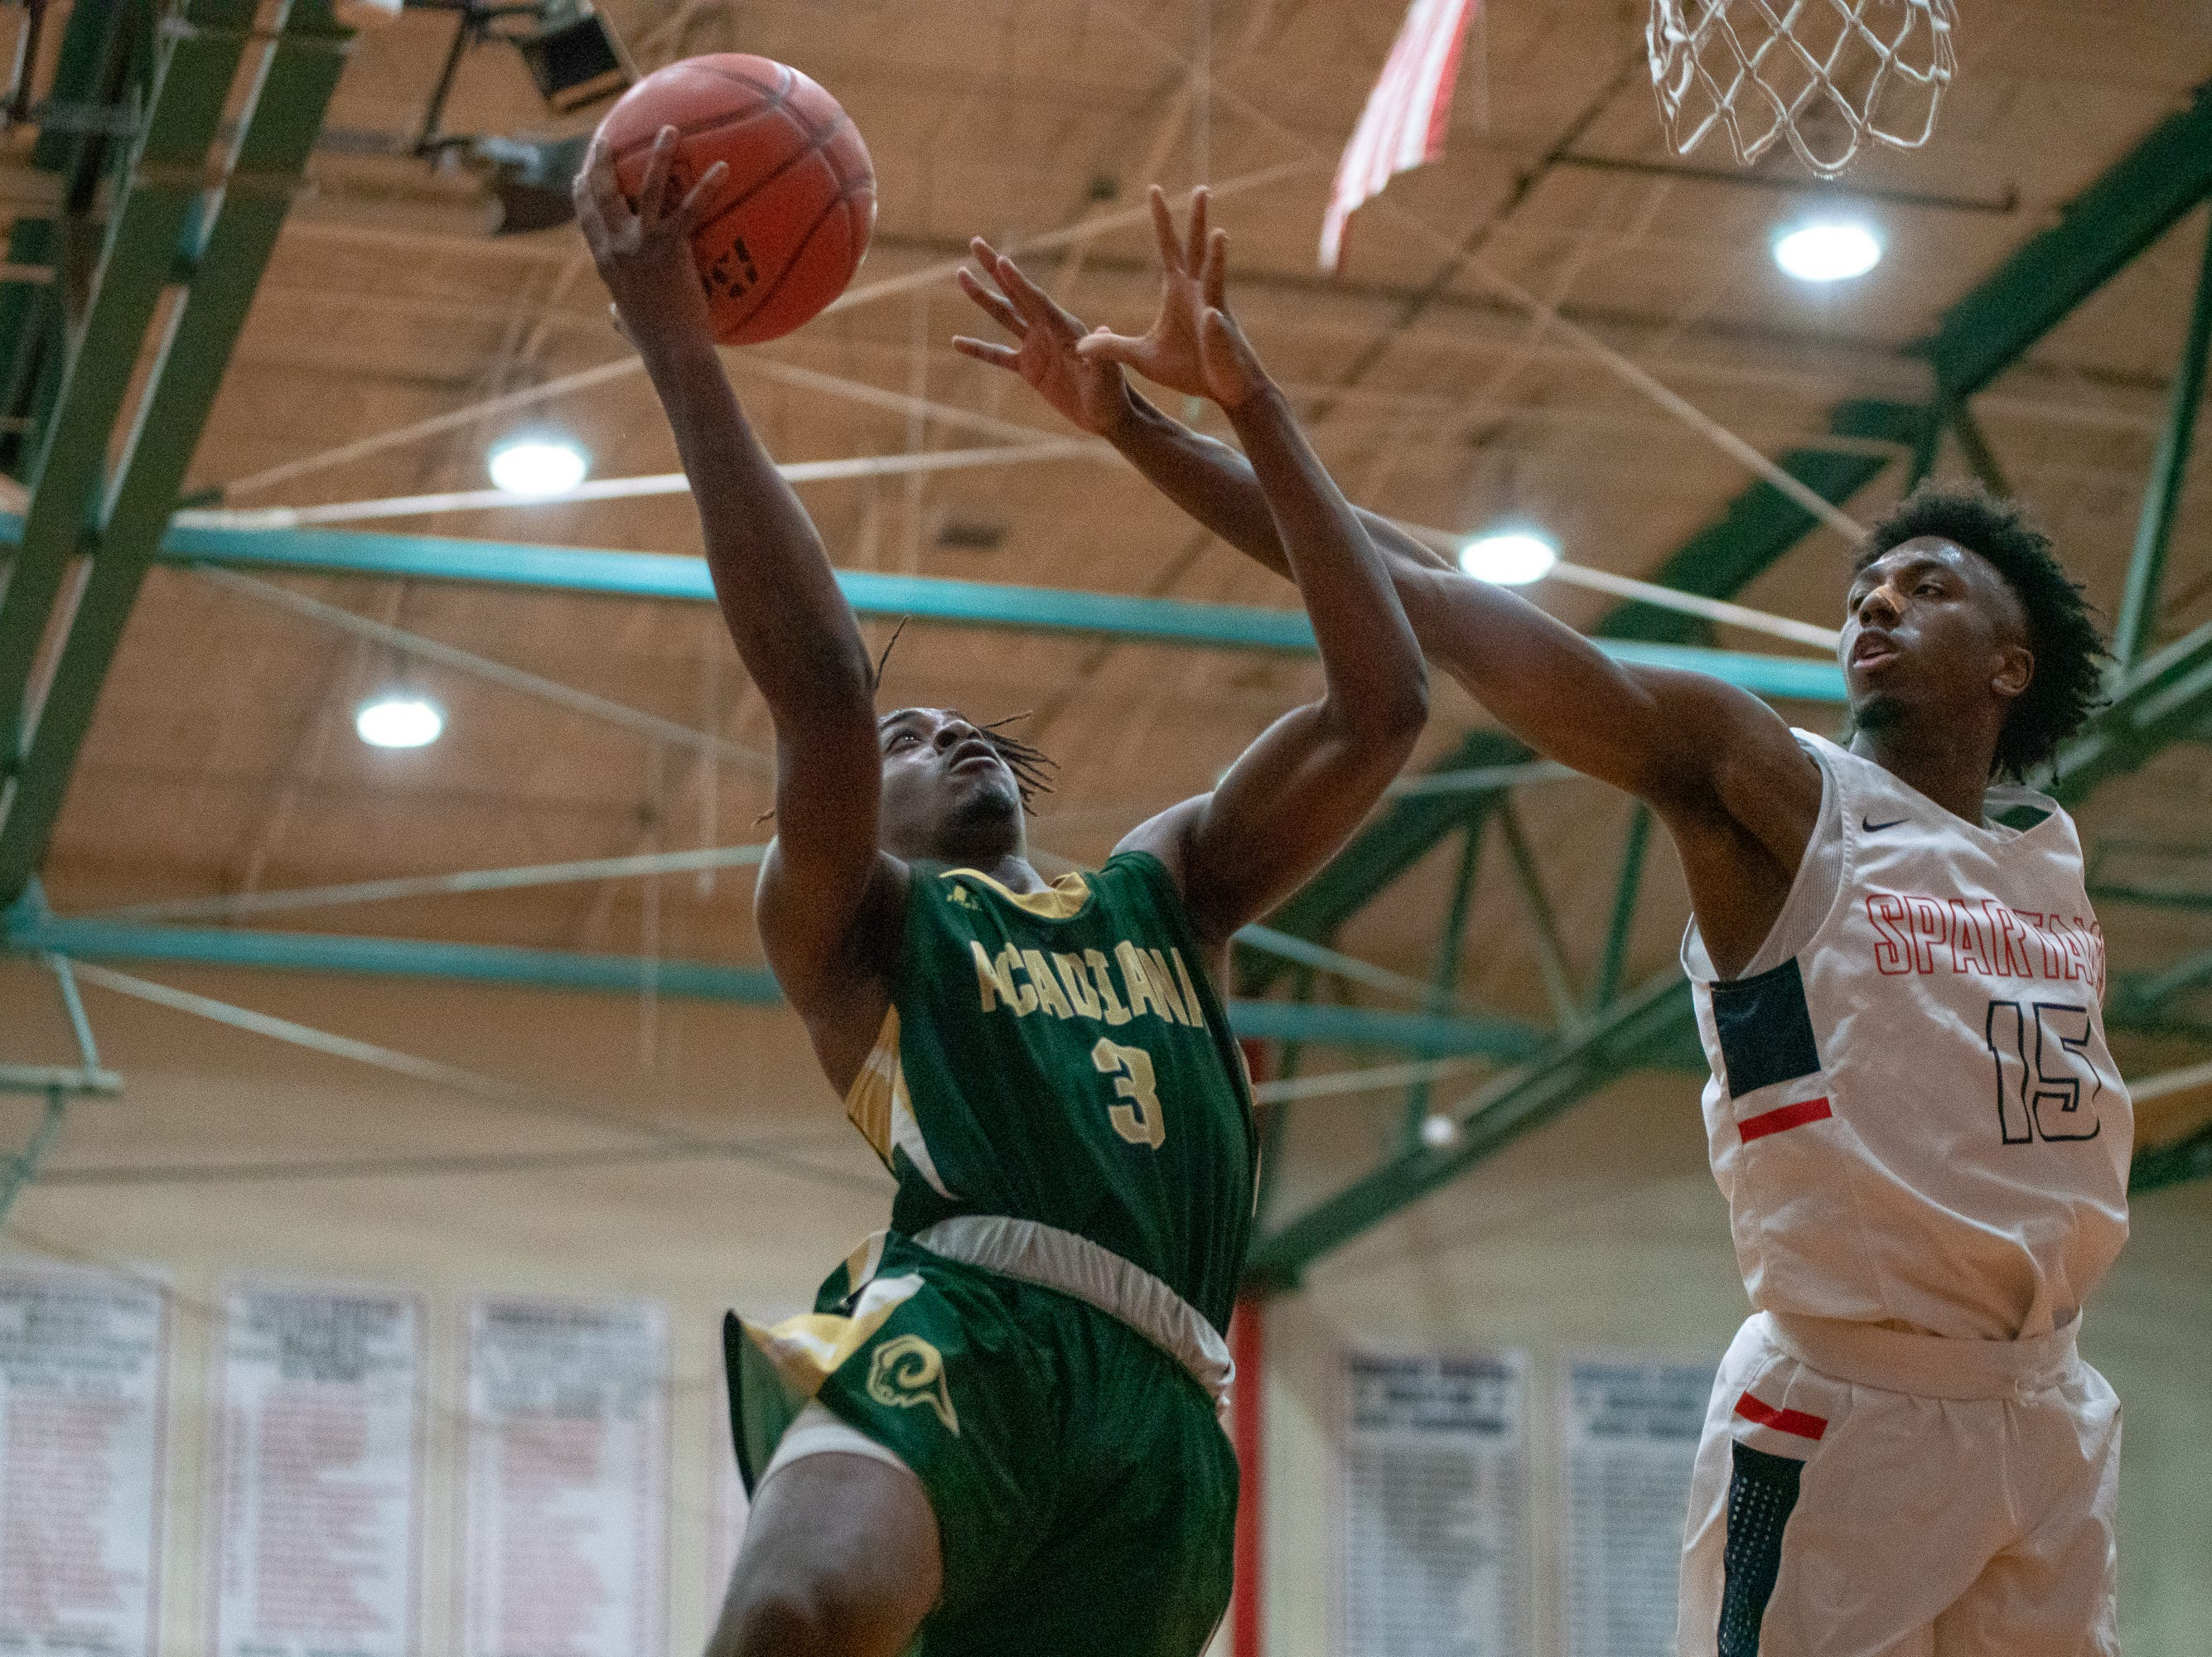 Acadiana High's Justin Dickerson (3) scores a layup during the play as the Comeaux High Spartans take on the Acadiana High Wreckin' Rams at Comeaux high school on Jan. 25, 2019.